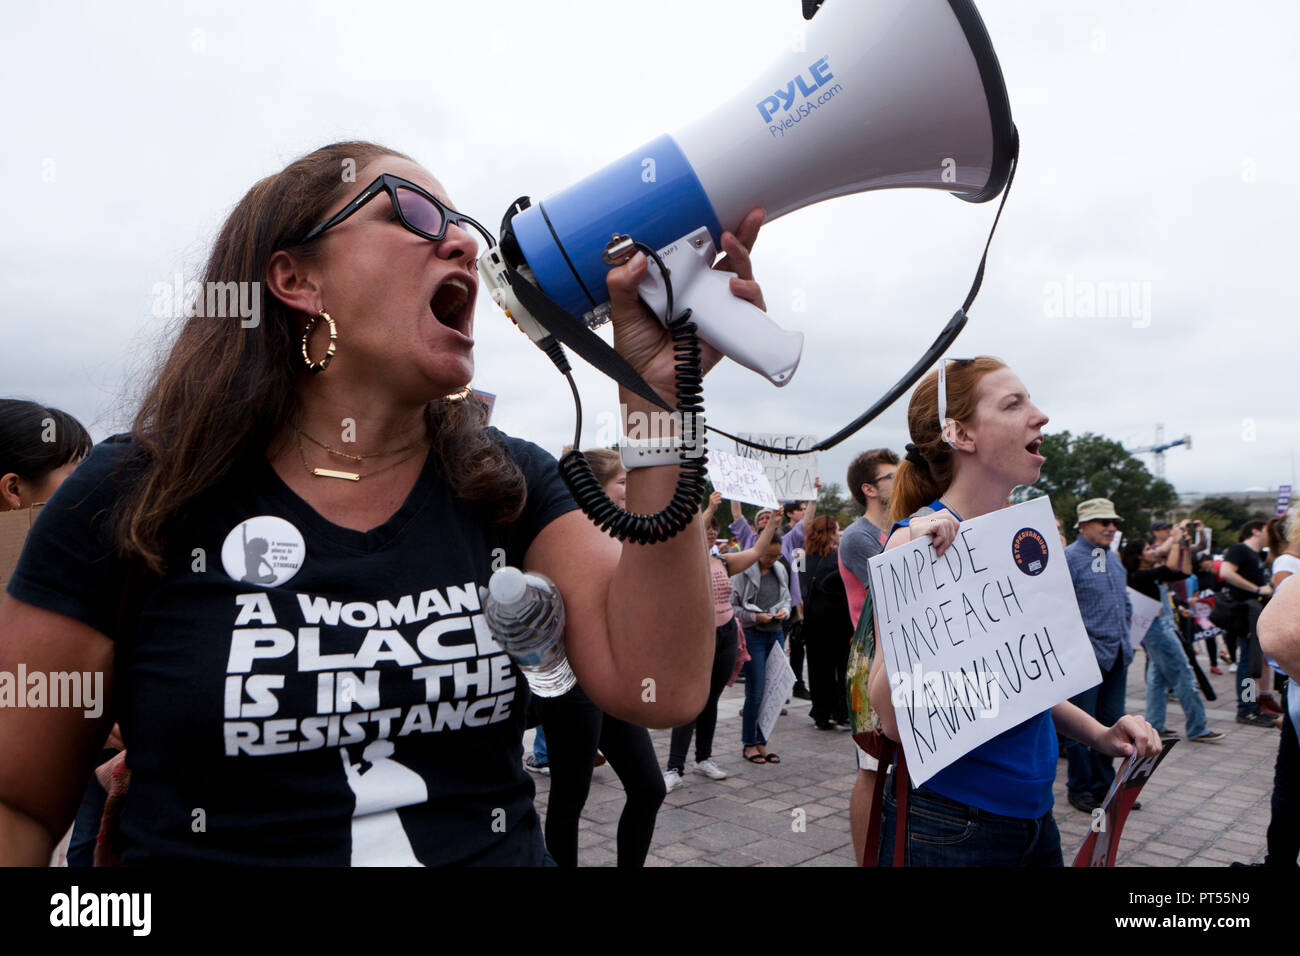 Washington, USA, 6th Oct, 2018: On the day of the final vote to confirm Brett Kavanaugh to the US Supreme Court, thousands of democrat activists protest in front of the Supreme Court building and the US Capitol. Pictured: Woman chanting into bullhorn against Justice Kavanaugh vote.  Credit: B Christopher/Alamy Live News - Stock Image